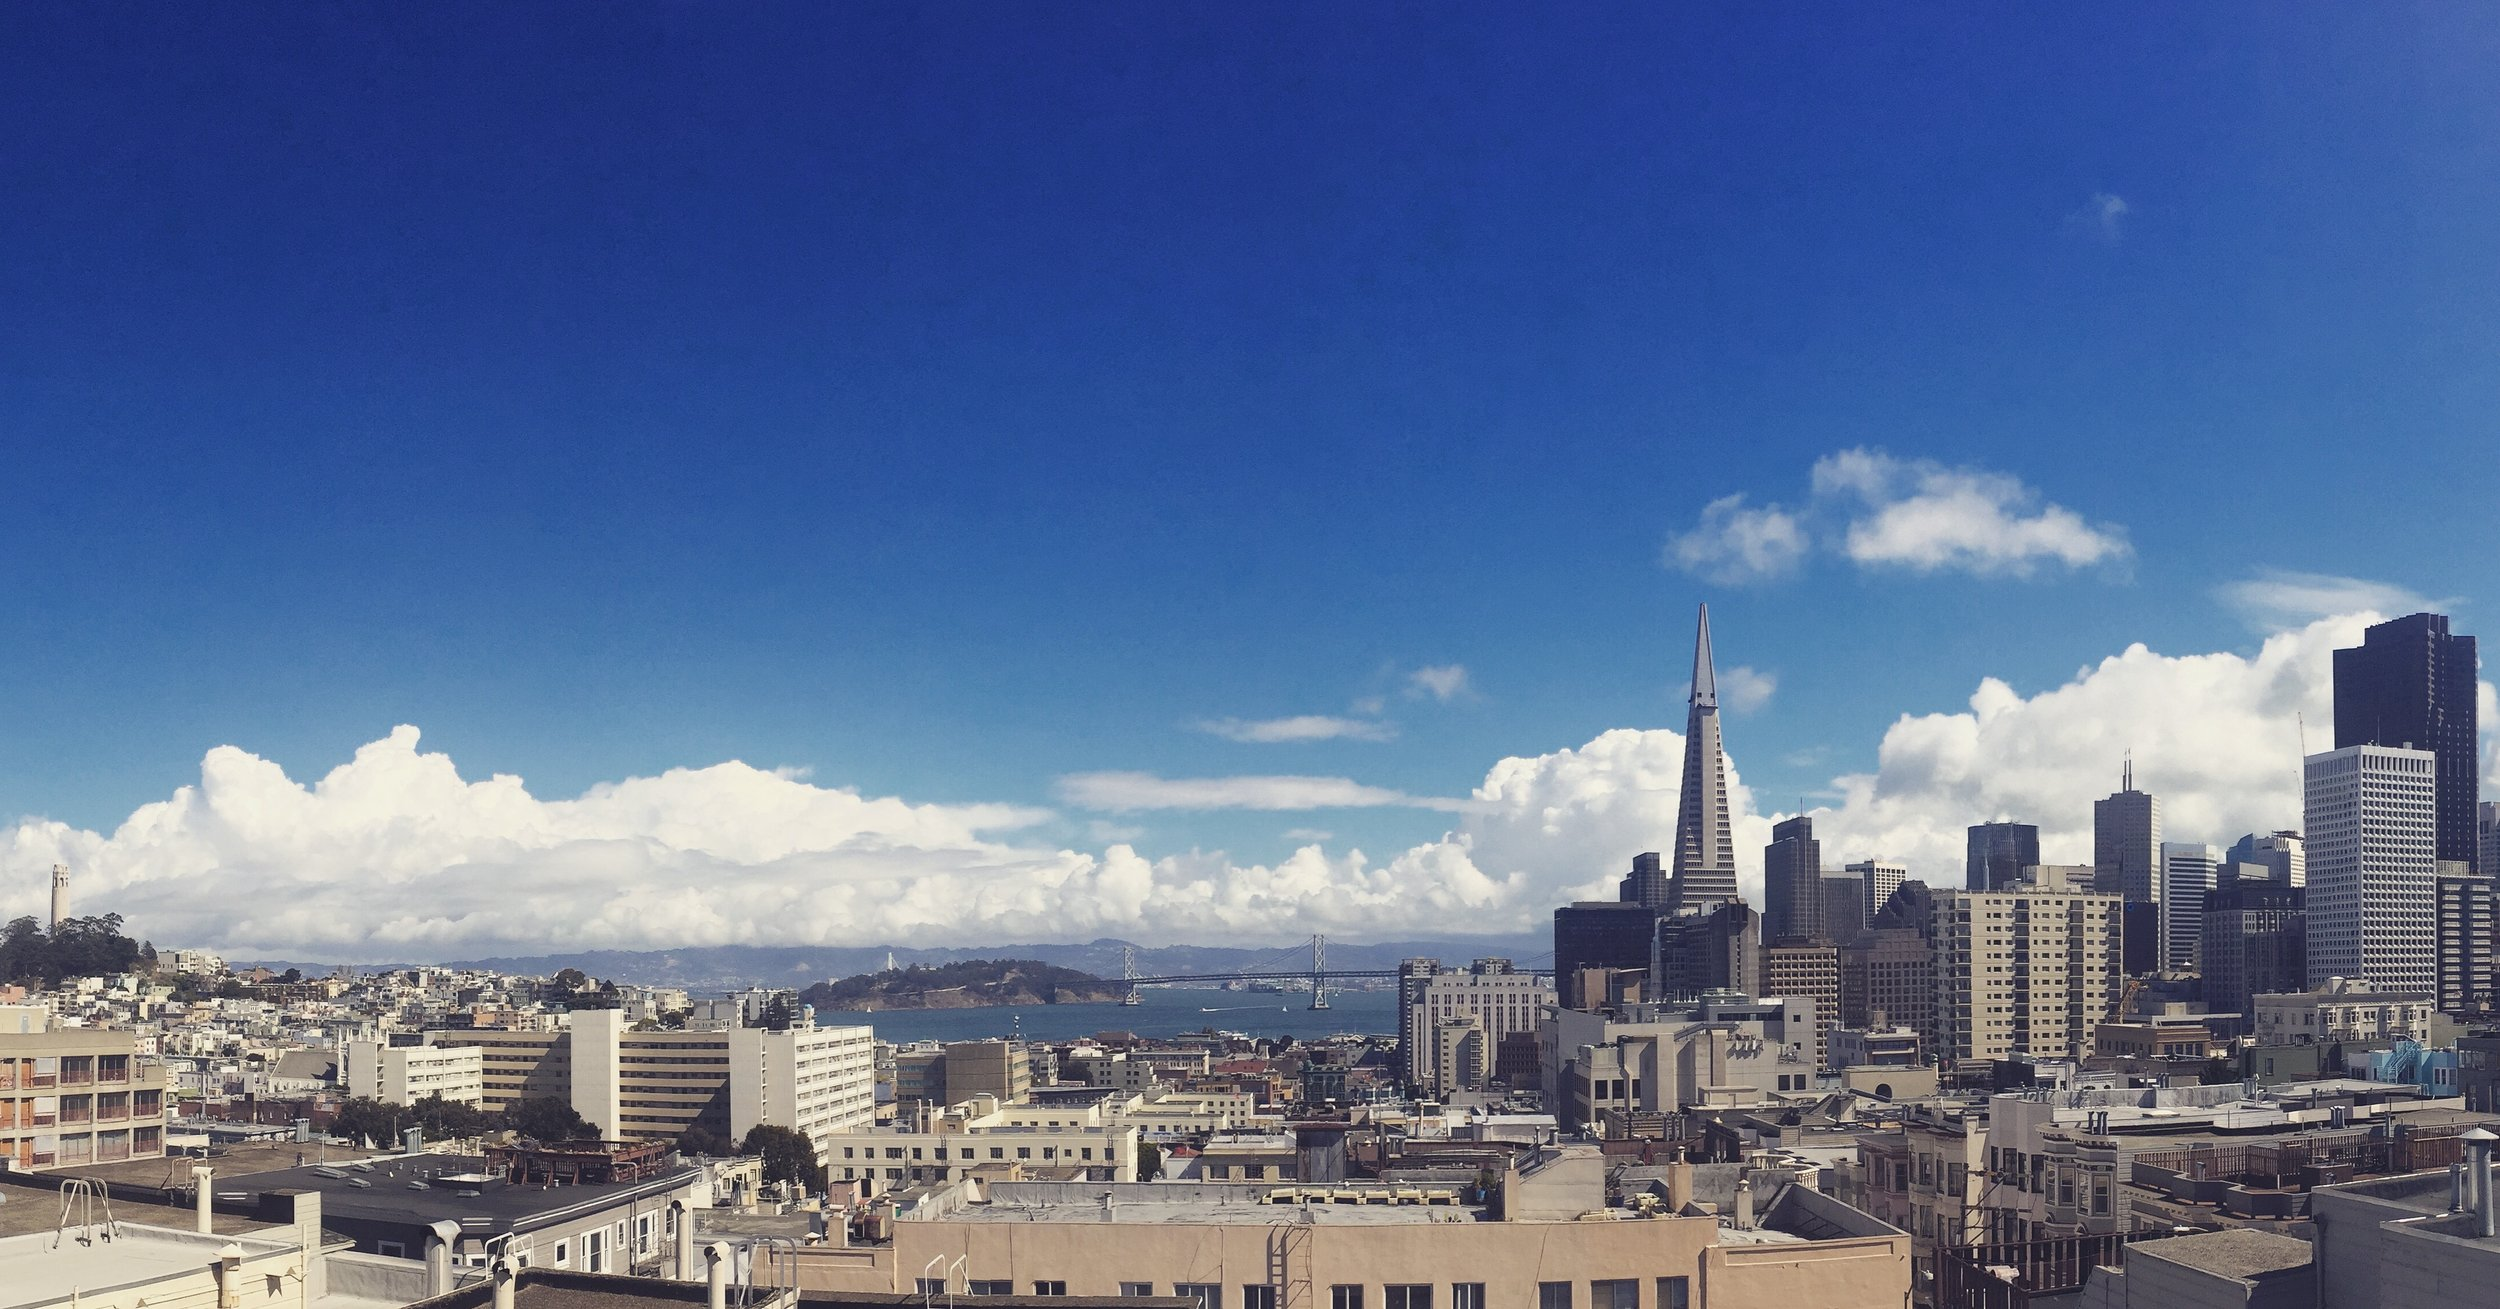 The view from our rooftop.  Good Medicine Picture Company is based in San Francisco, California.